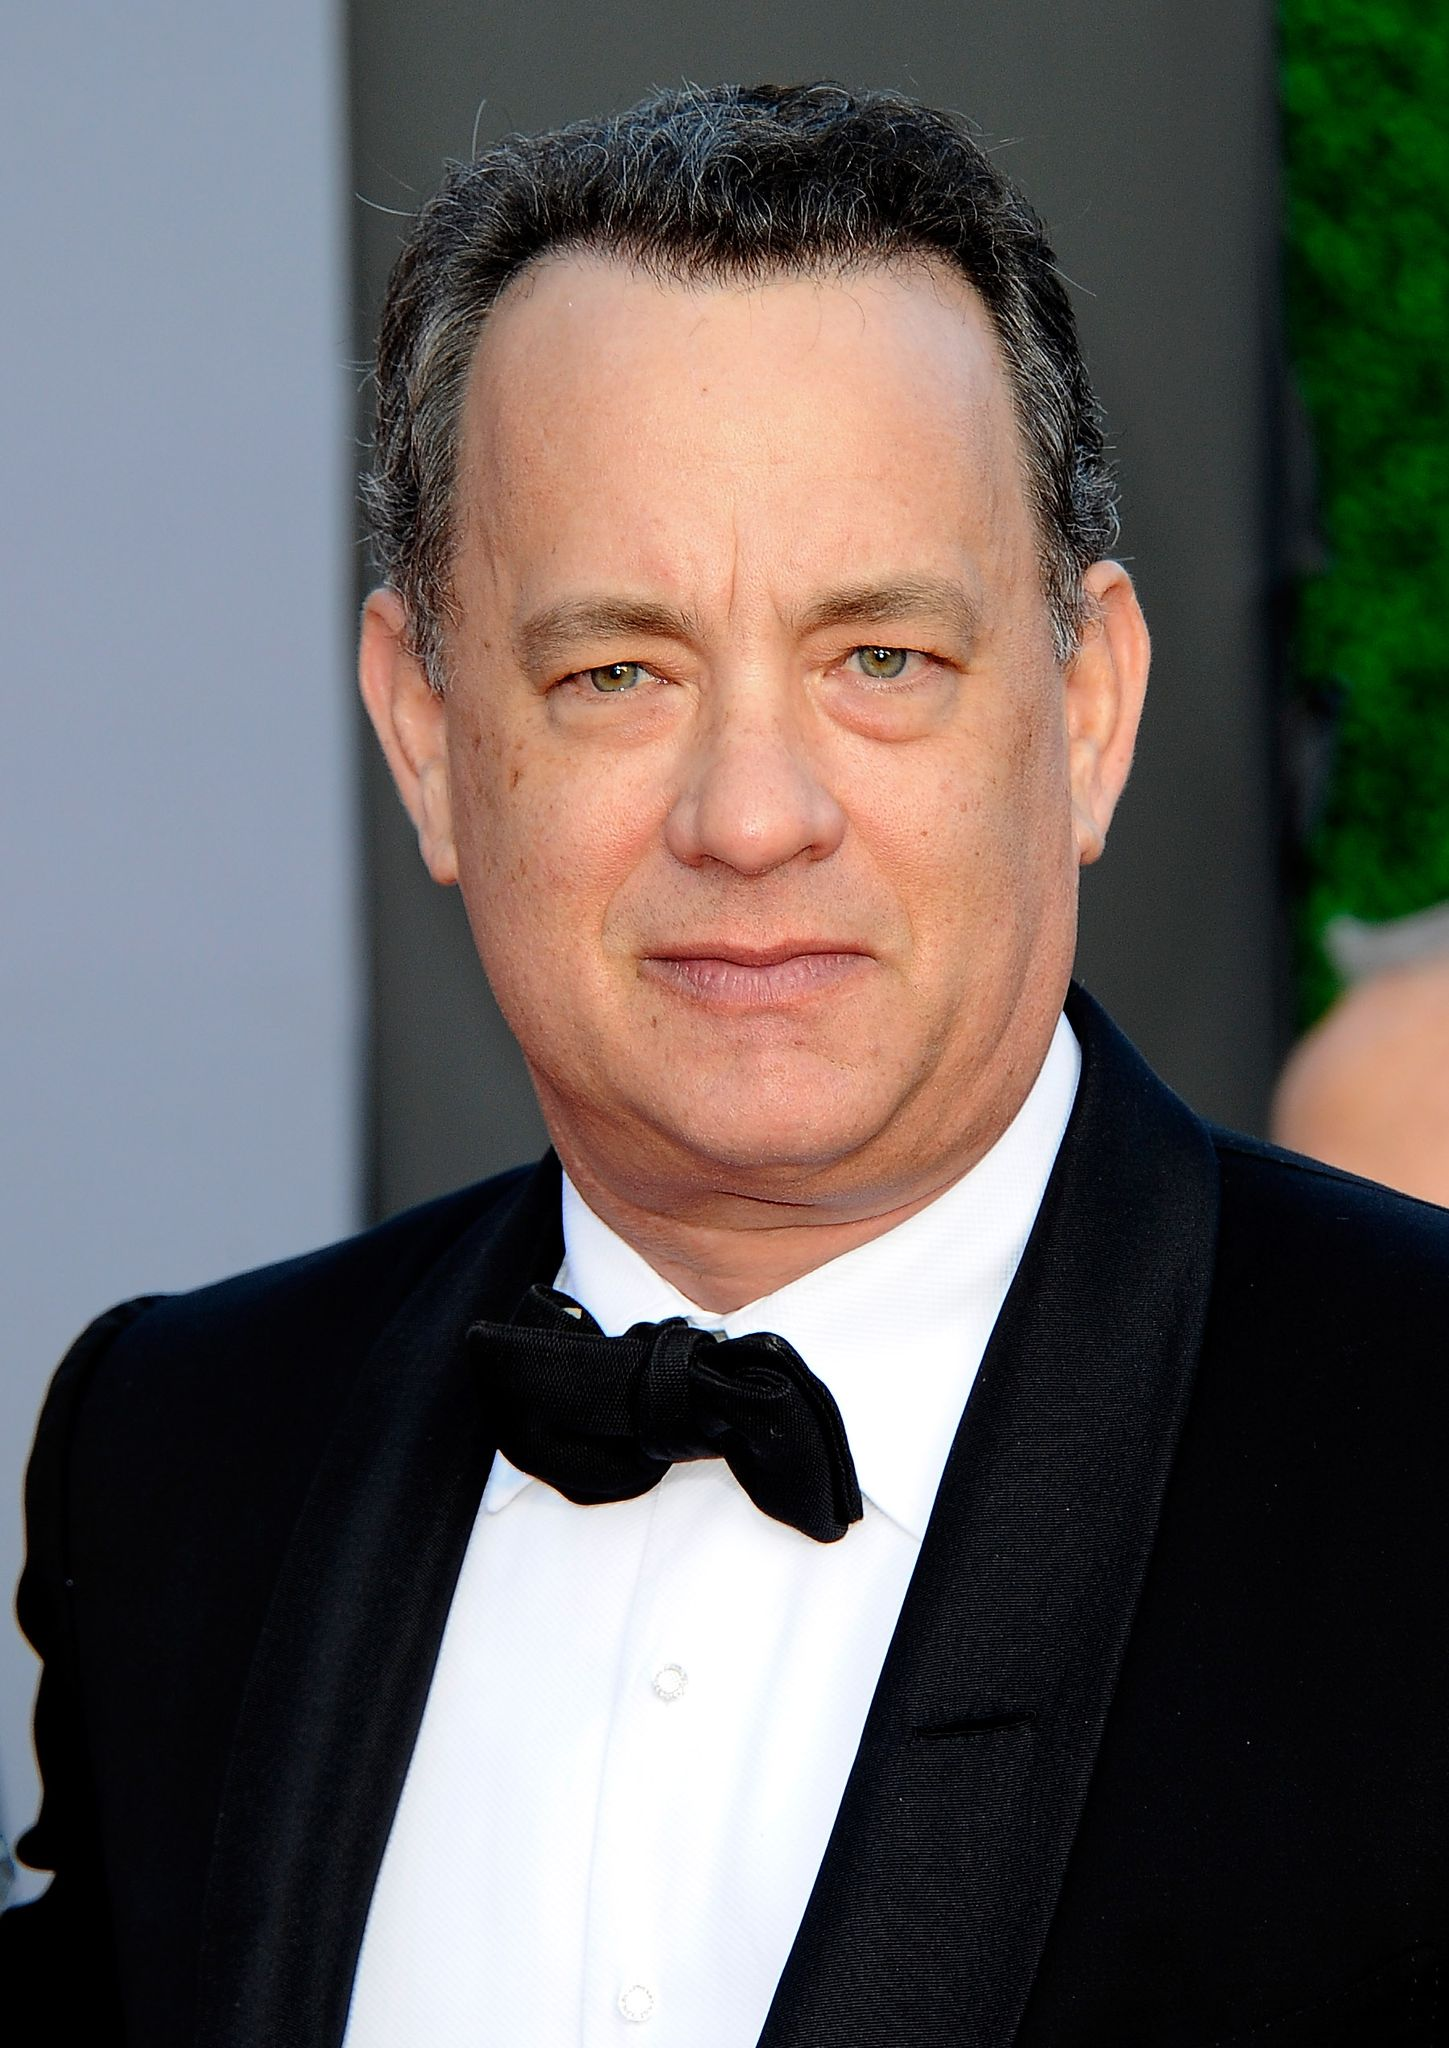 Tom Hanks at the BAFTA Brits To Watch event held at the Belasco Theatre on July 9, 2011 in Los Angeles, California.| Photo: Getty Images